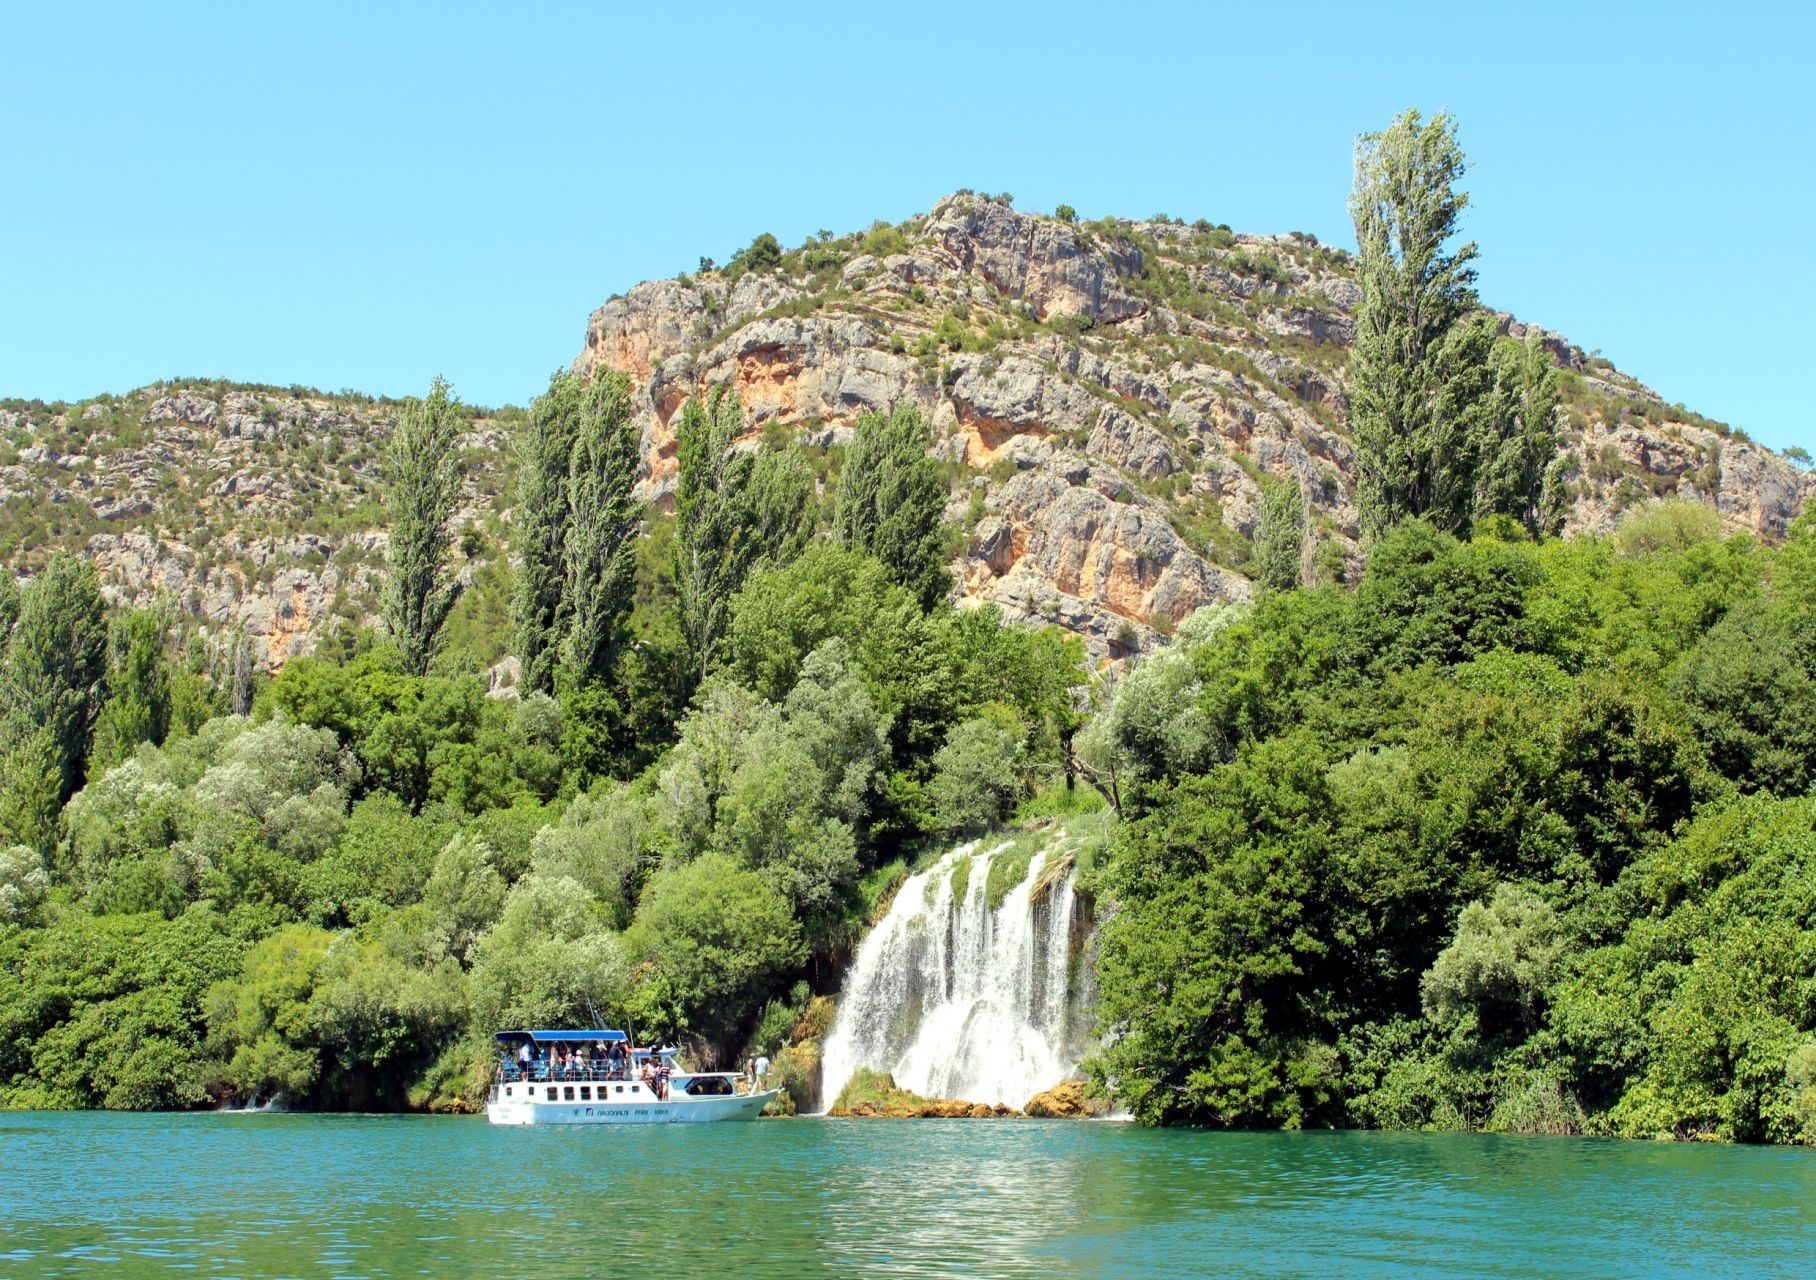 KRKA WATERFALLS AND ŠIBENIK